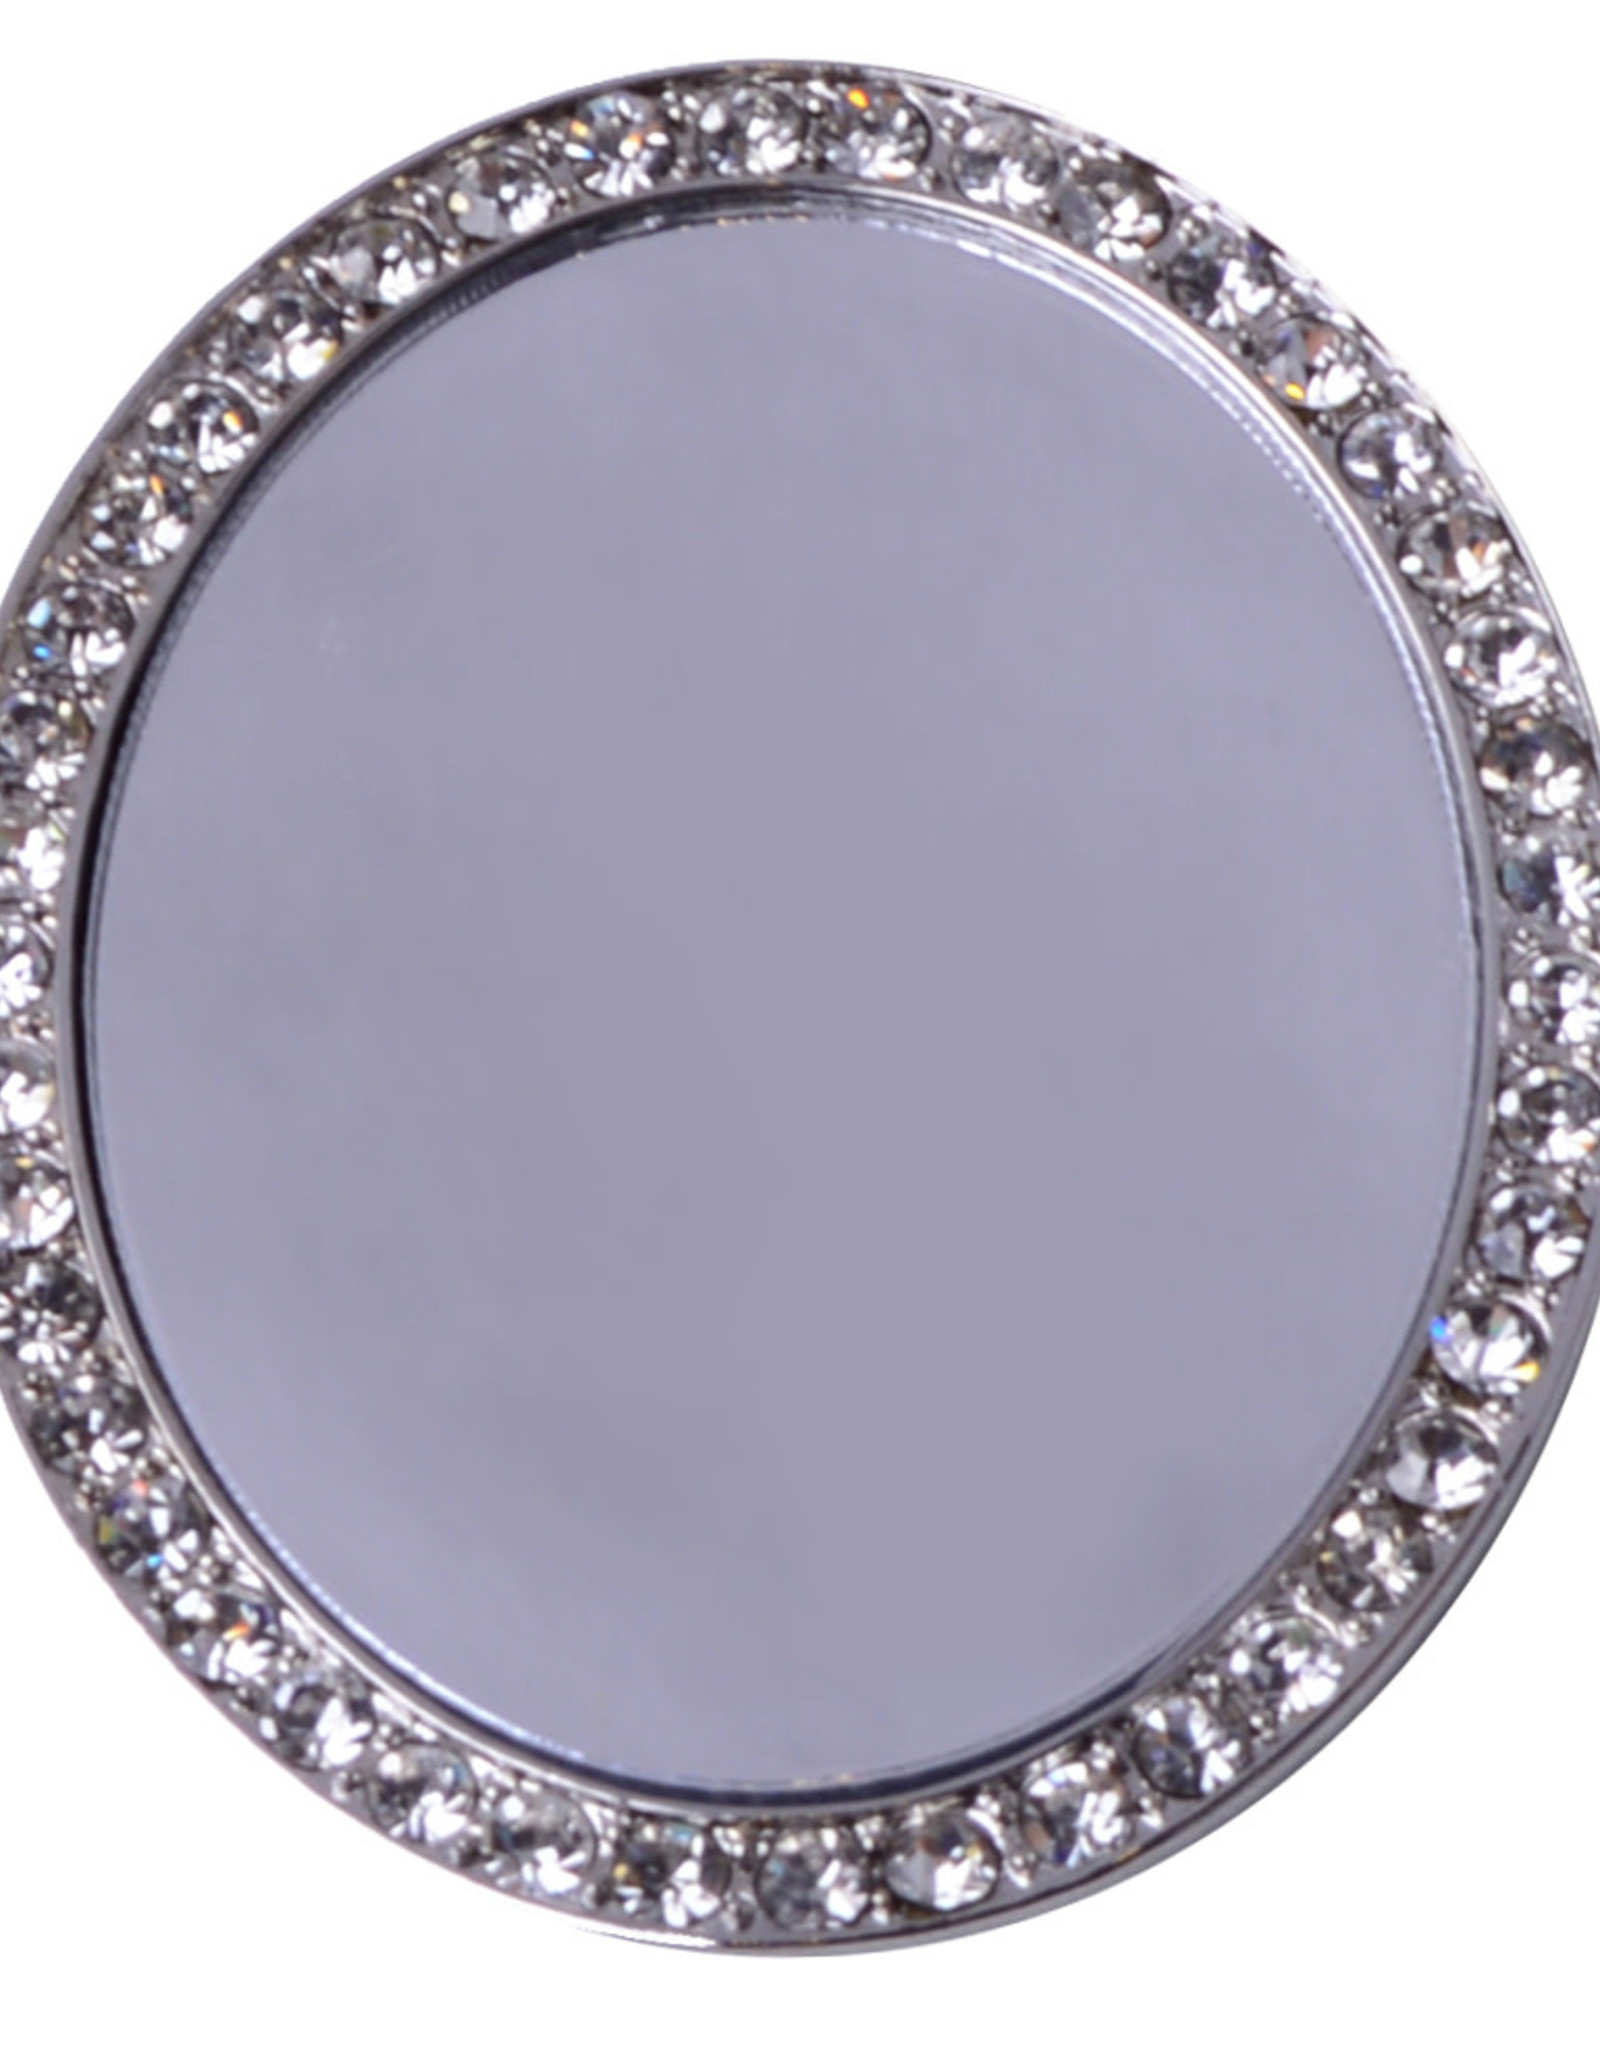 iDecoz Oval Tech Mirror - Silver/Clear Crystals